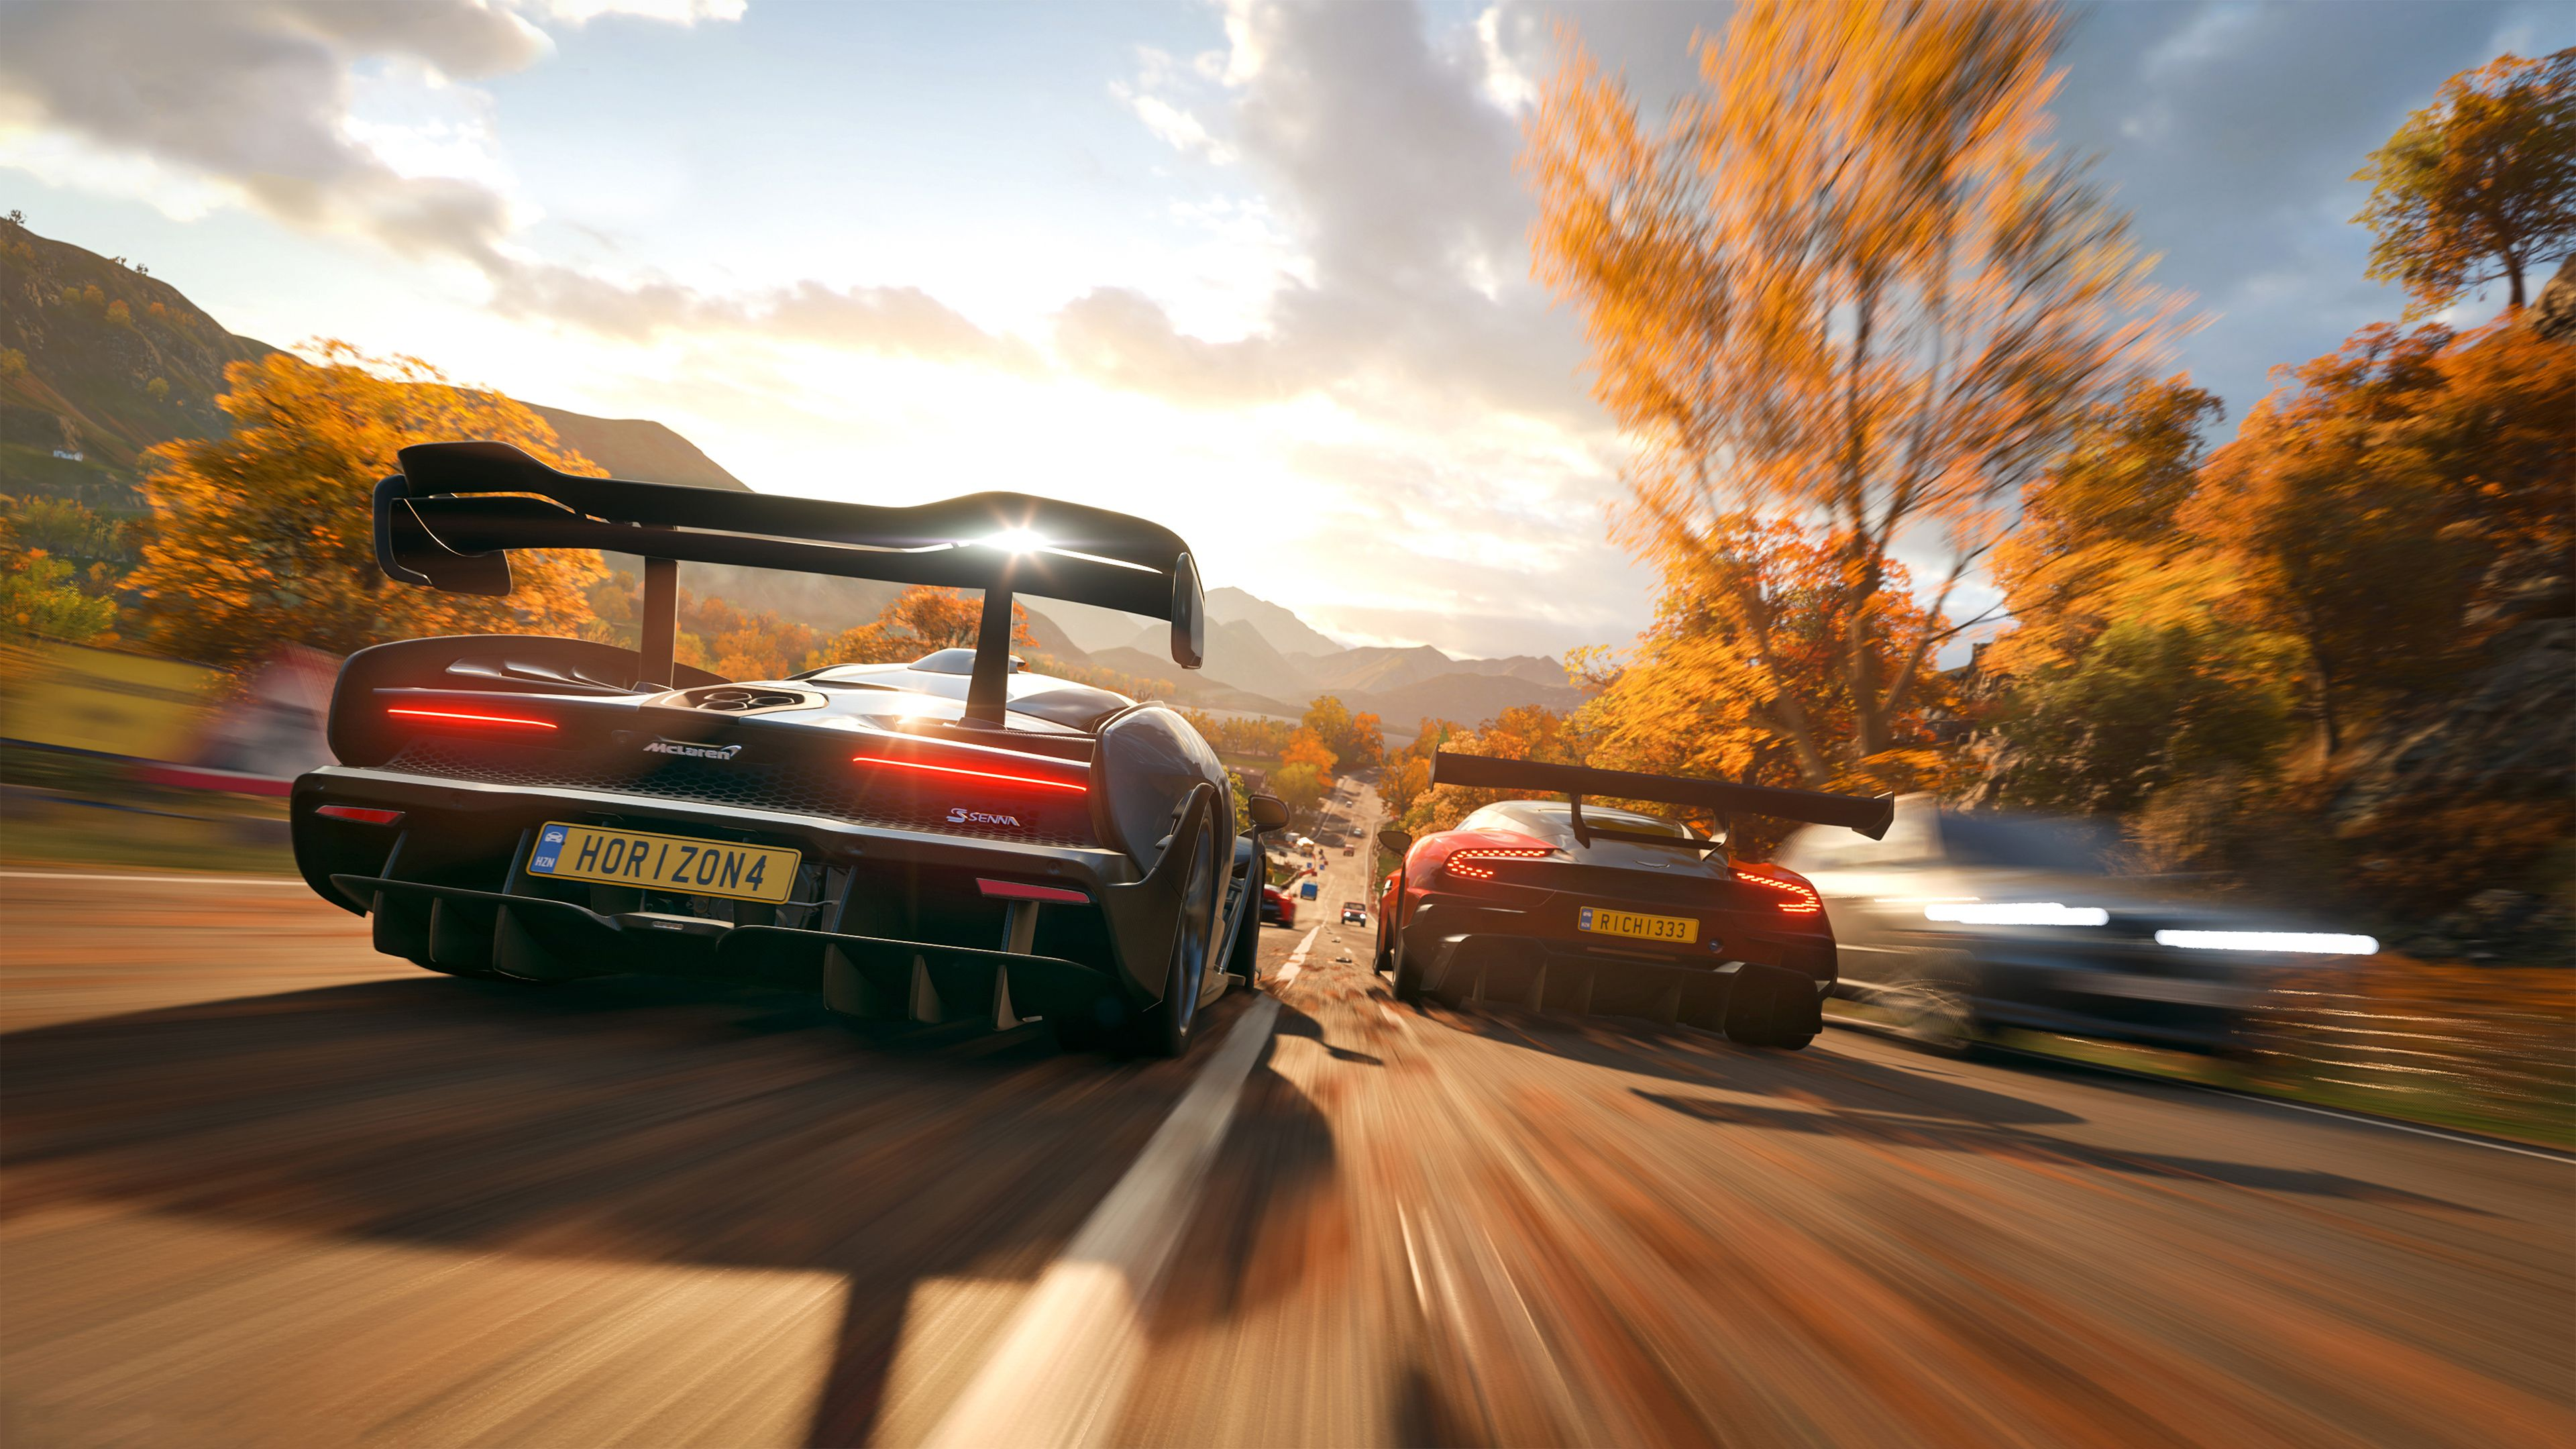 Wallpaper 4k 4k Forza Horizon 4 2018 games wallpapers, 4k ...